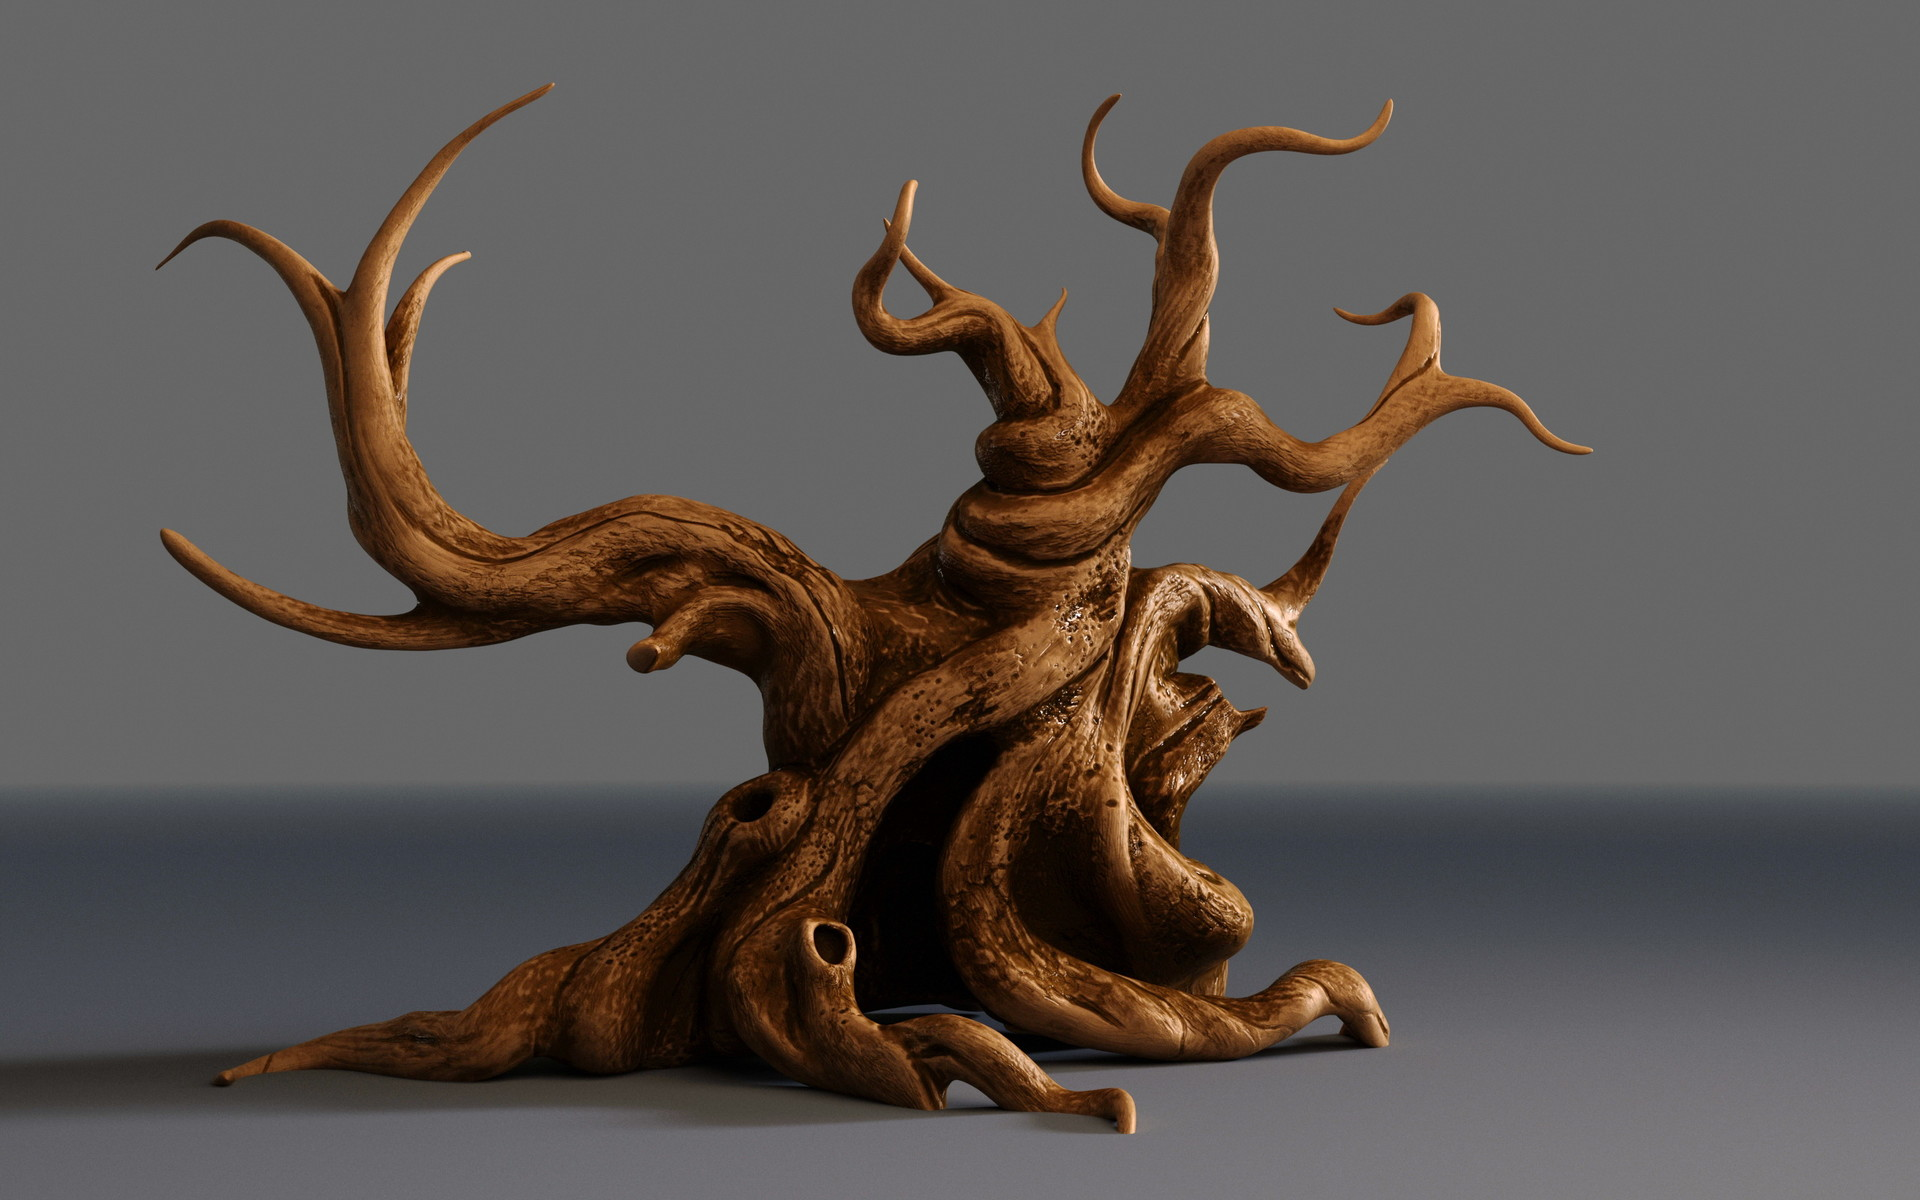 Eugene melnikov big tree render2 0002 c